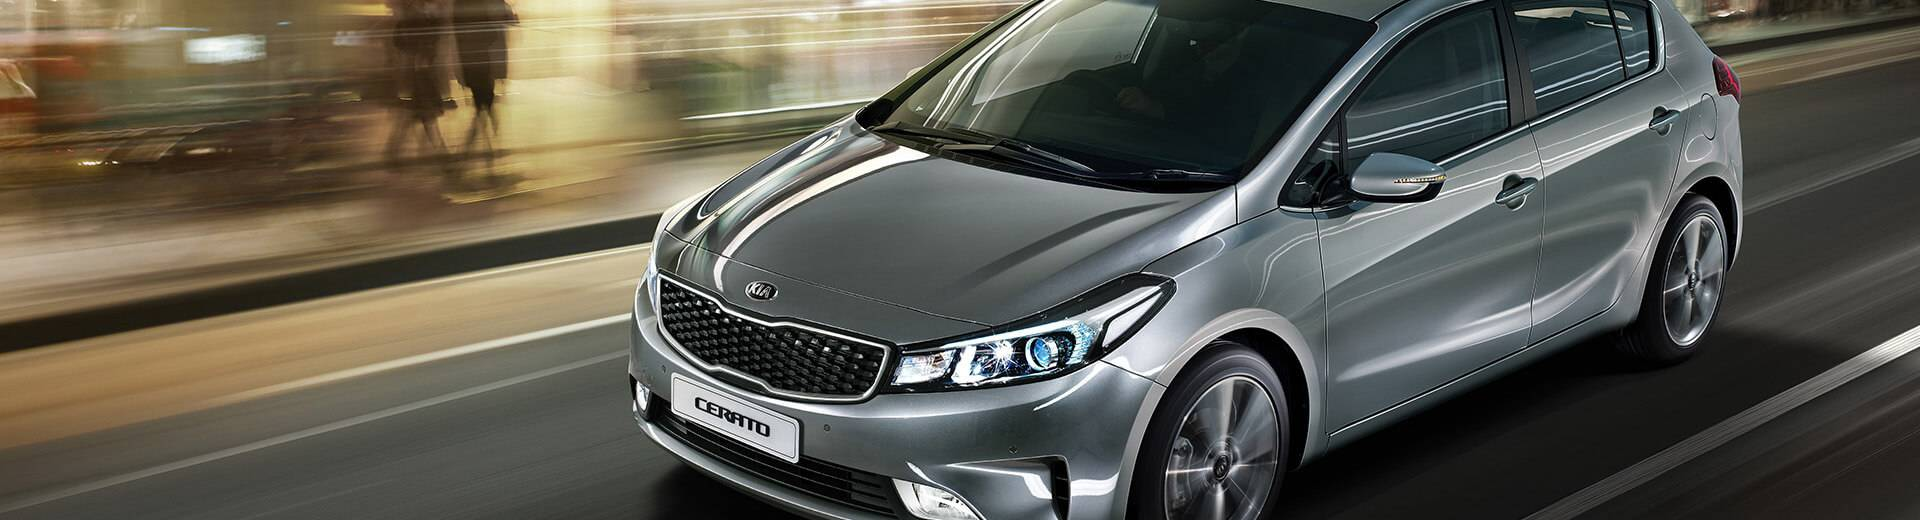 Finance Bunbury Kia